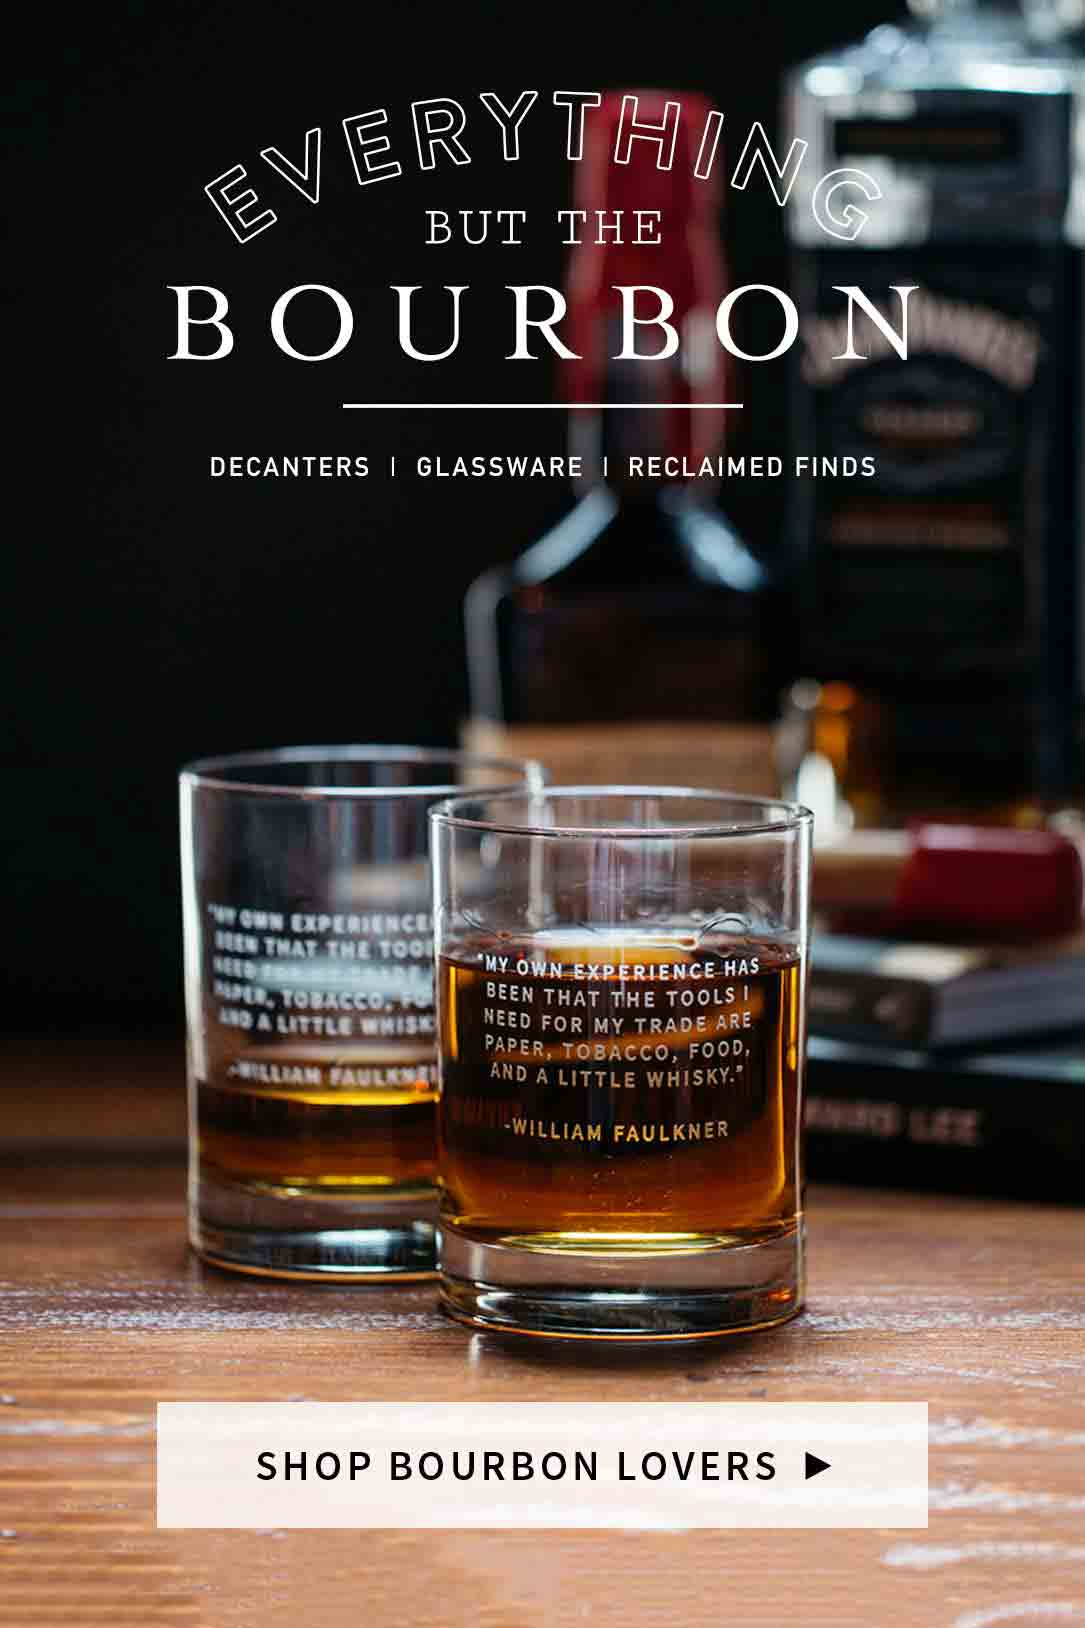 Shop Bourbon Lover Barware Glassware And Reclaimed Finds